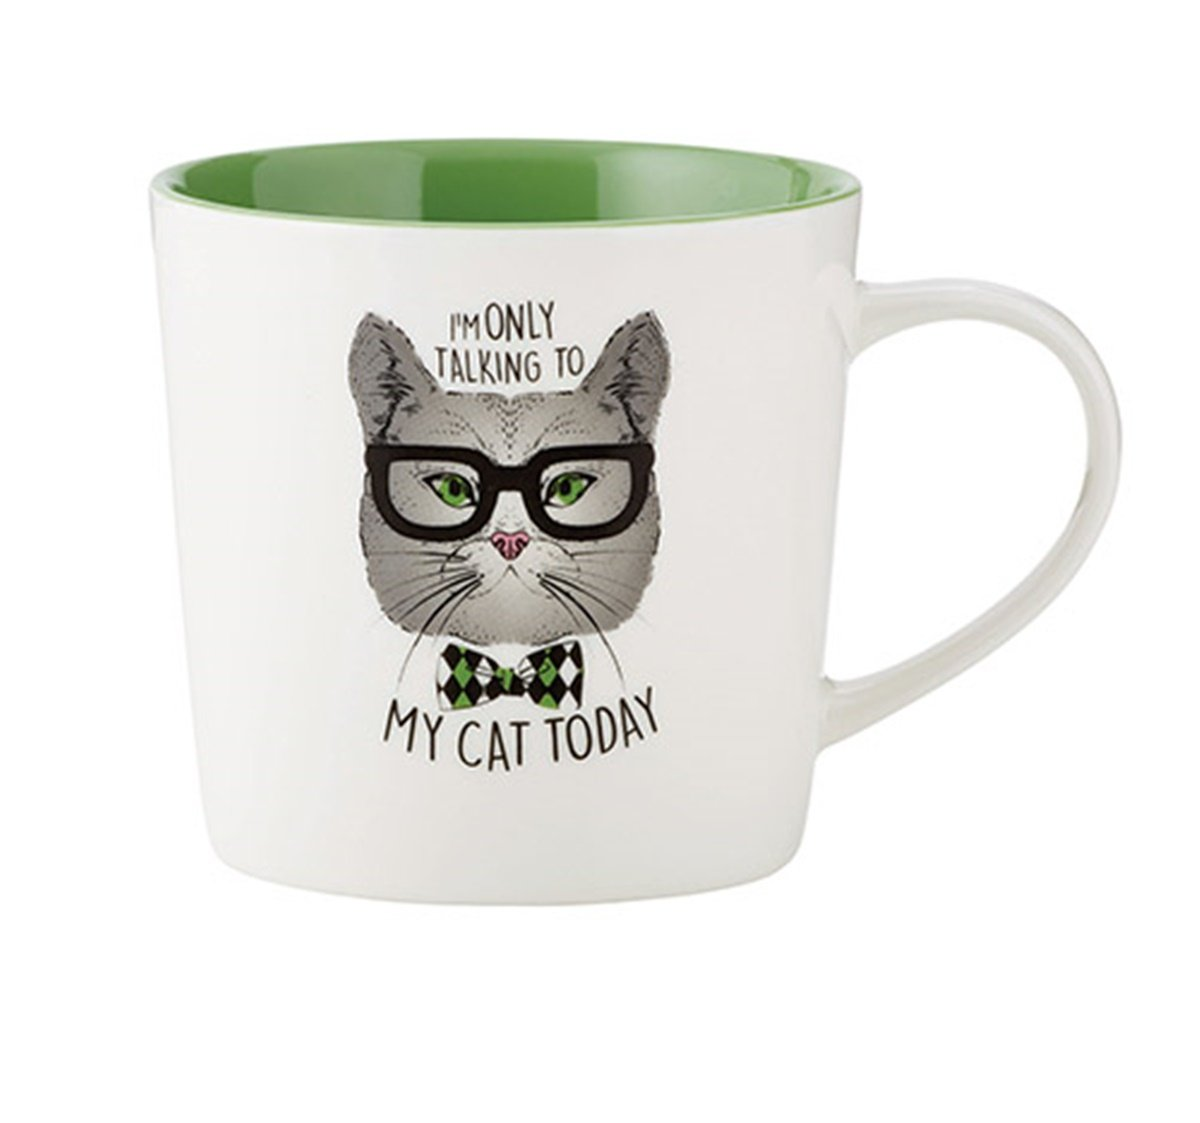 Cattitudes Cat Loversセラミックコーヒーマグカップ、15 oz 3.75 inches ホワイト B1272  Talking to My Cat B01MZJ0YMR